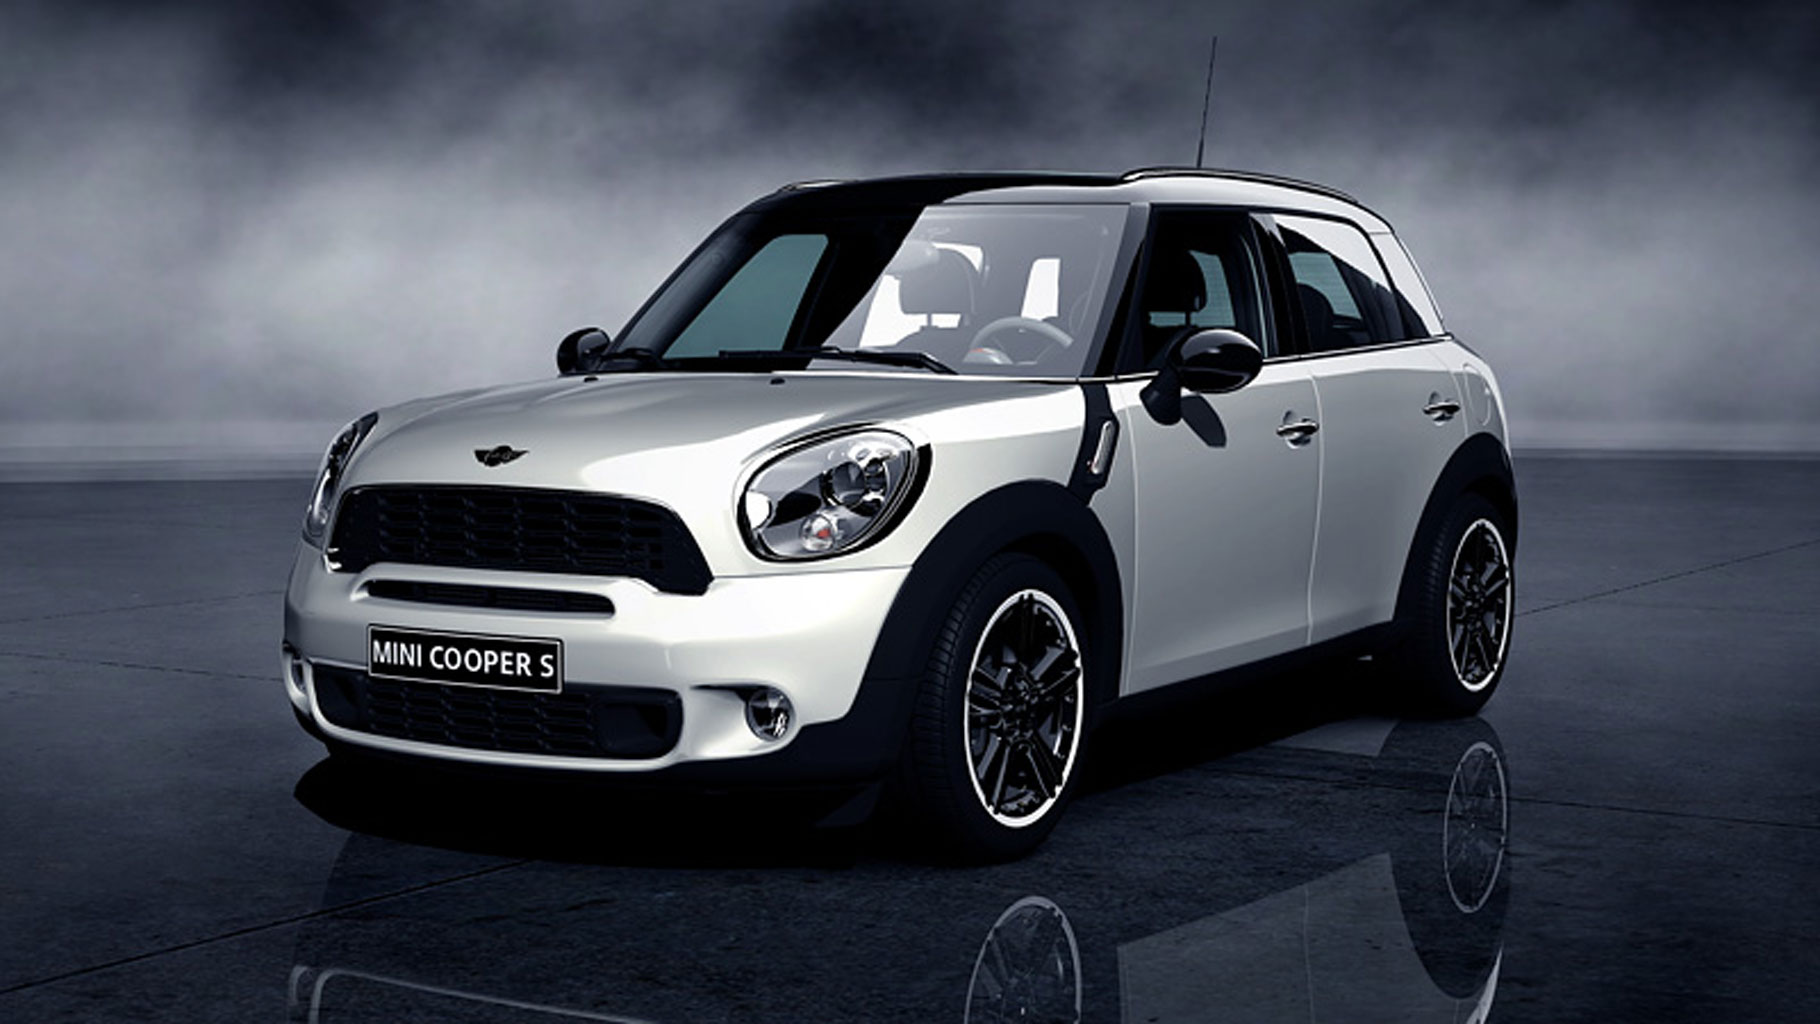 7 Money Saving Tips For Owners Of Mini Coopers And Other Cars Too